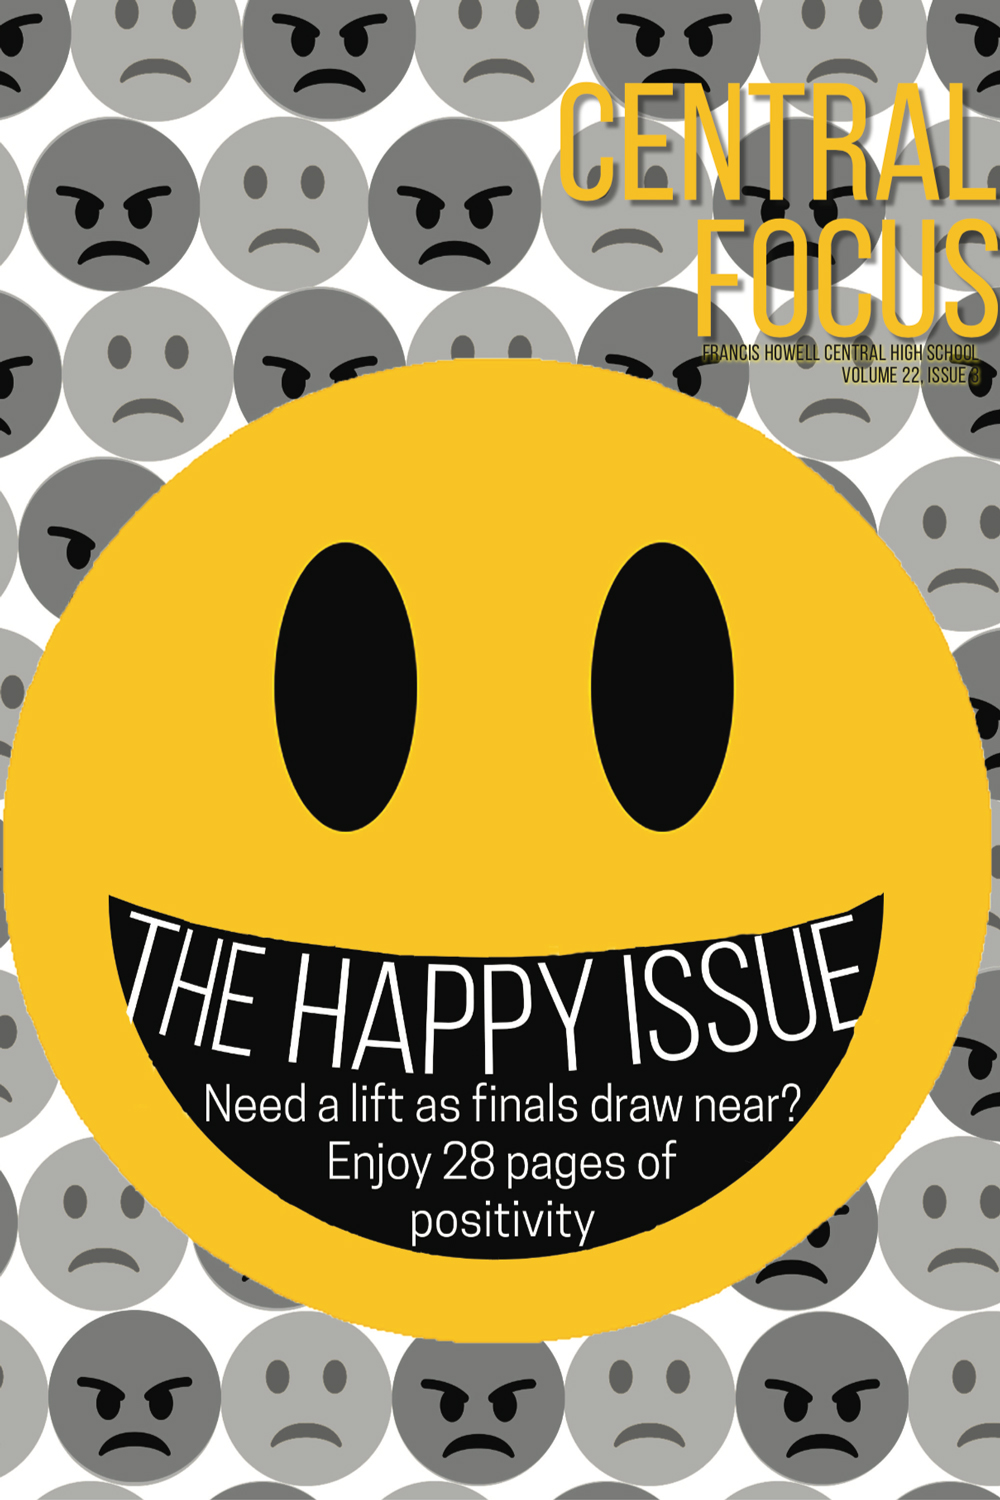 The December Issue of the Central Focus: The Happy Issue